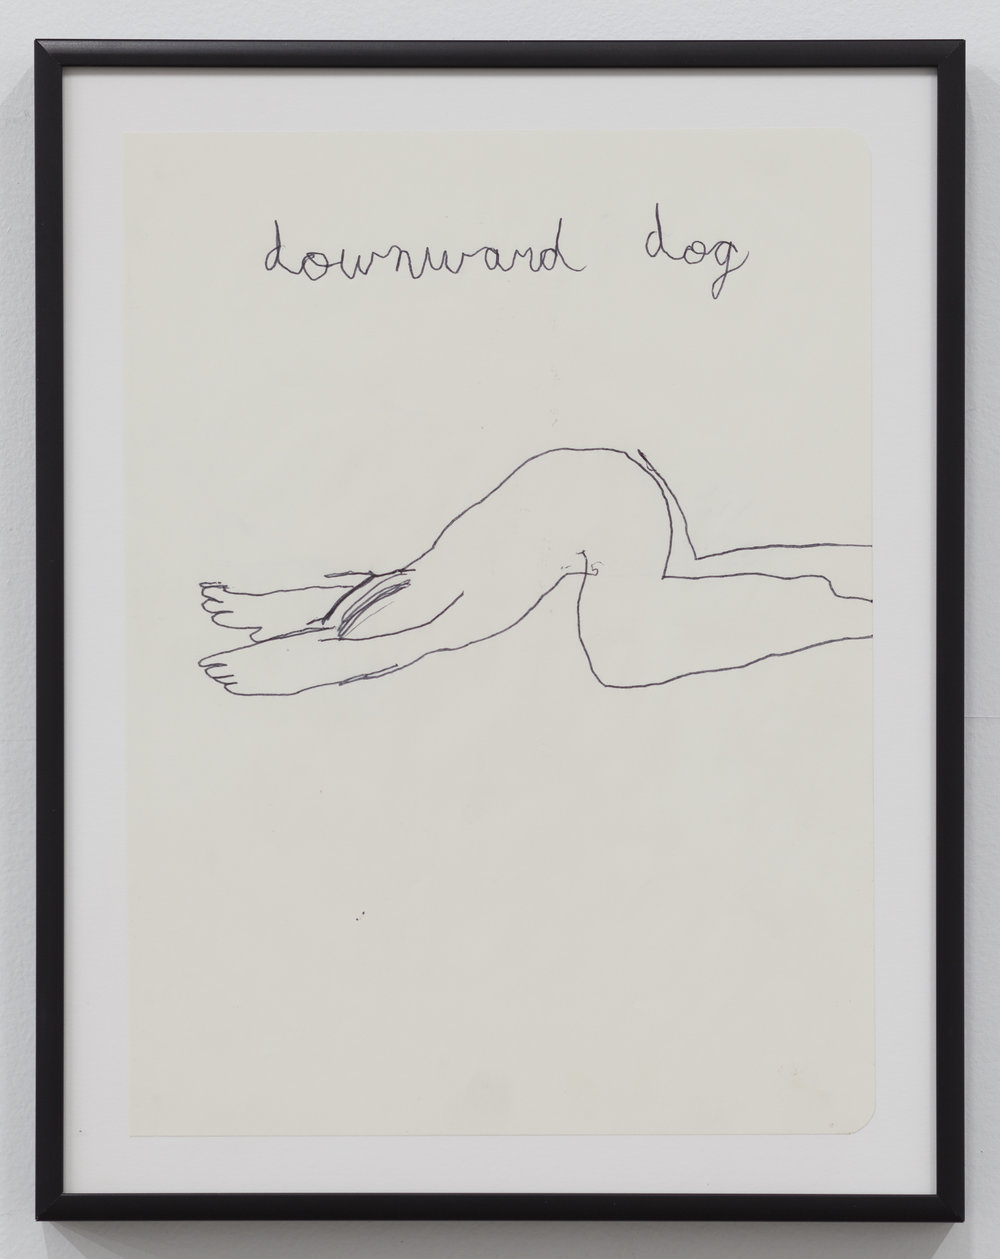 Downward_Dog.jpg